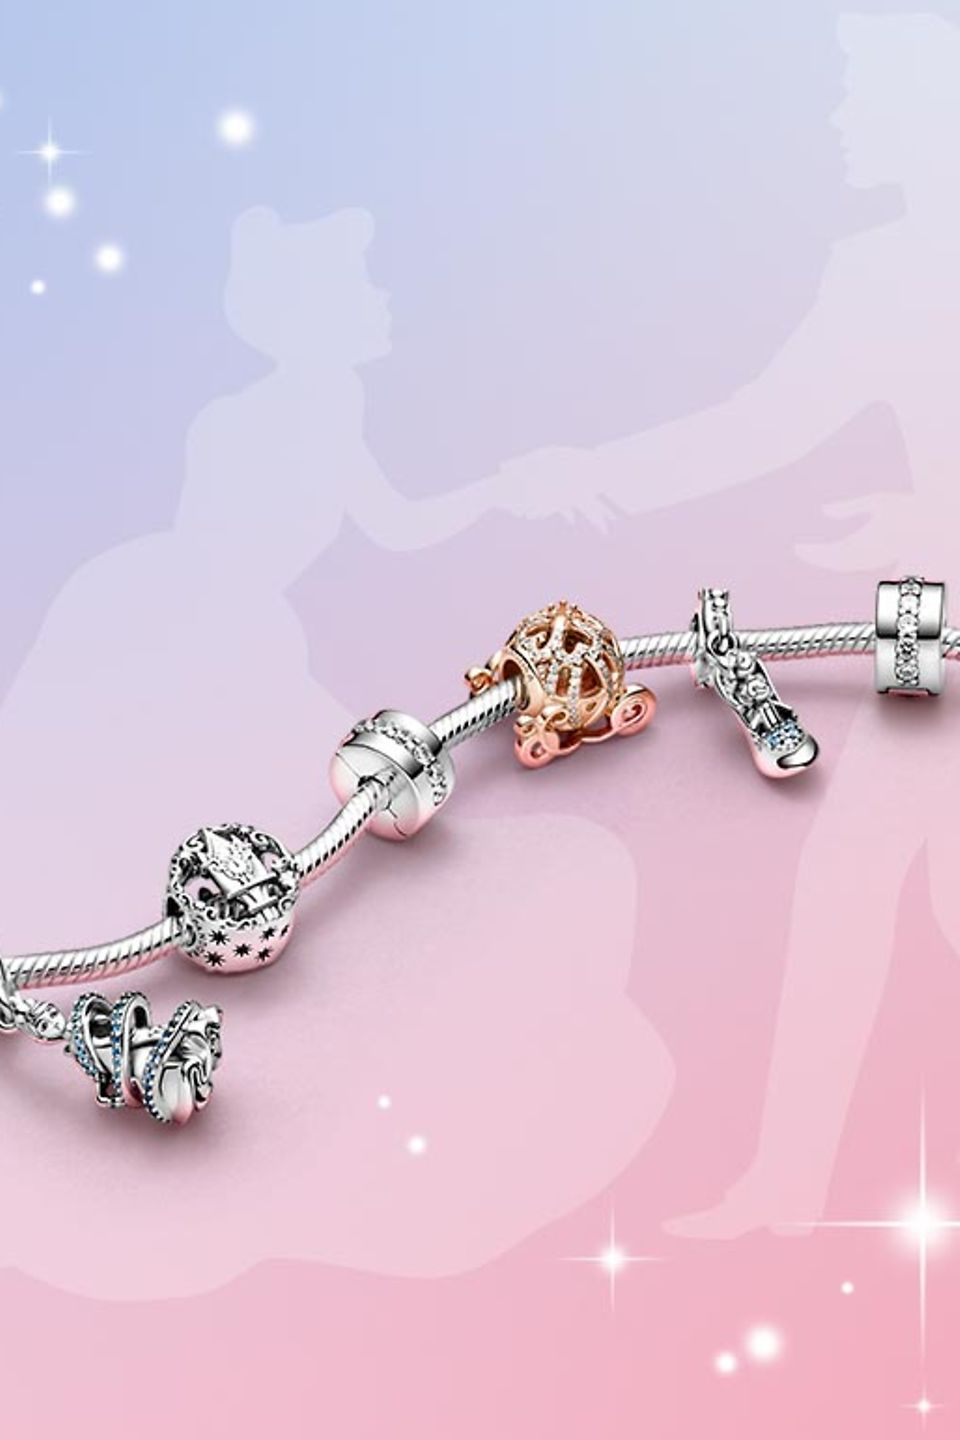 Disney's Cinderella charms from the Disney x Pandora collection on a bracelet.